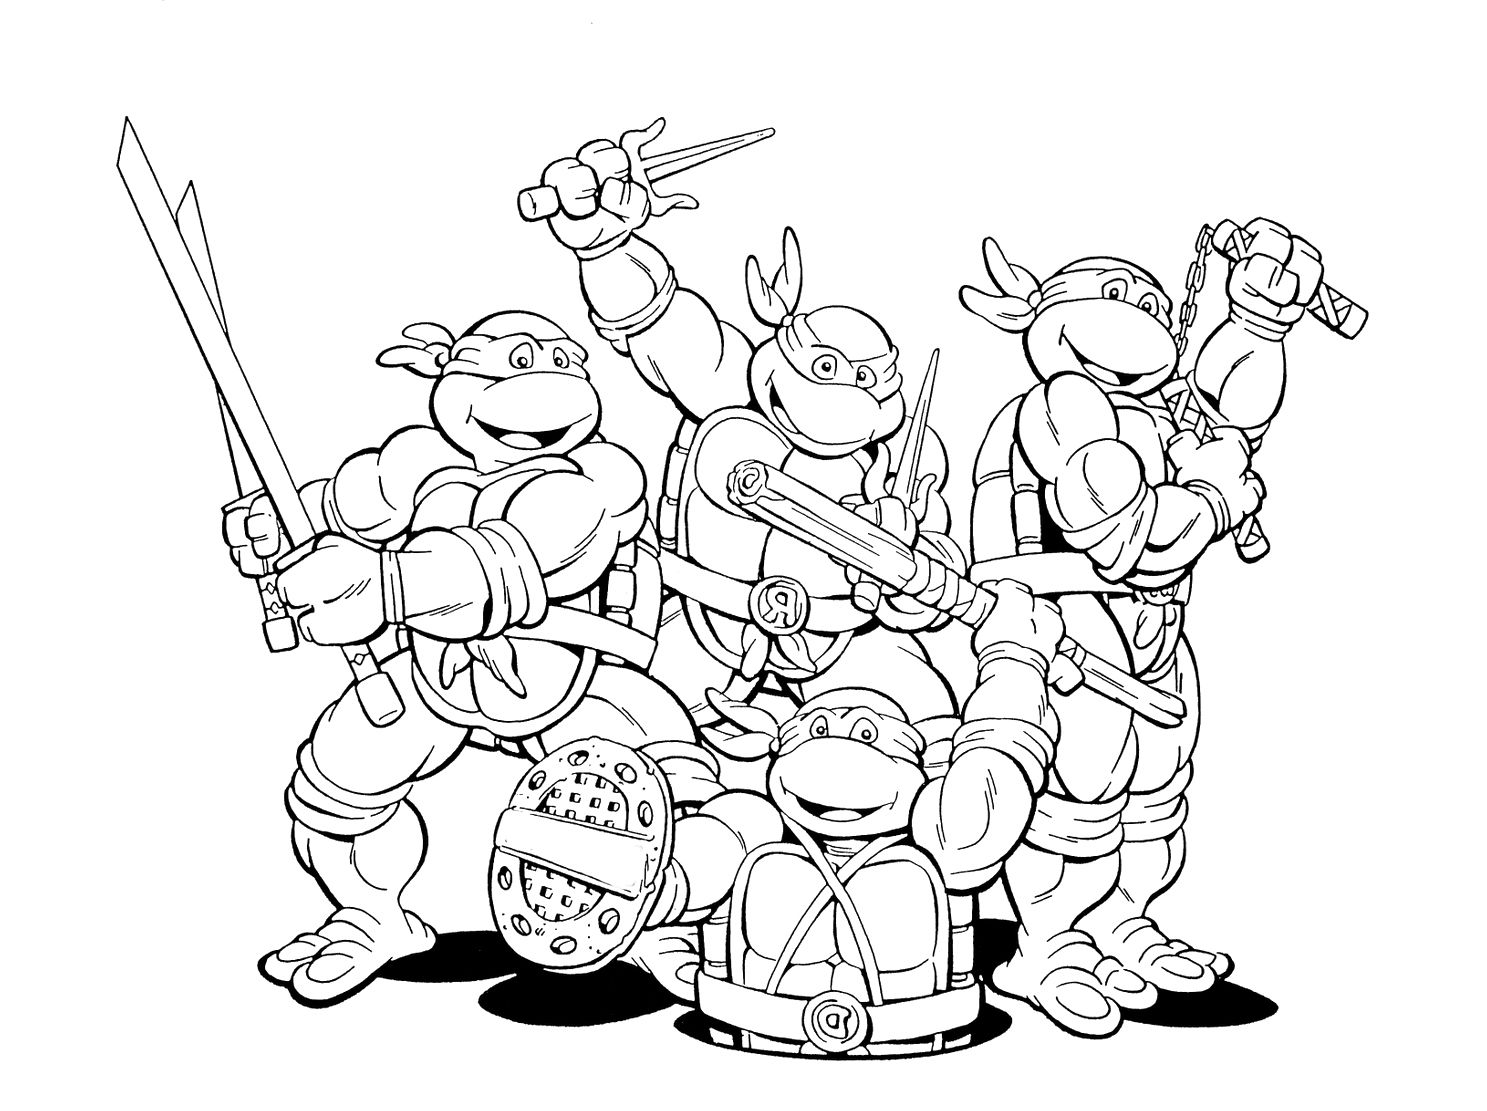 Teenage Mutant Ninja Turtles Coloring Pages | Crafty Stuff ...